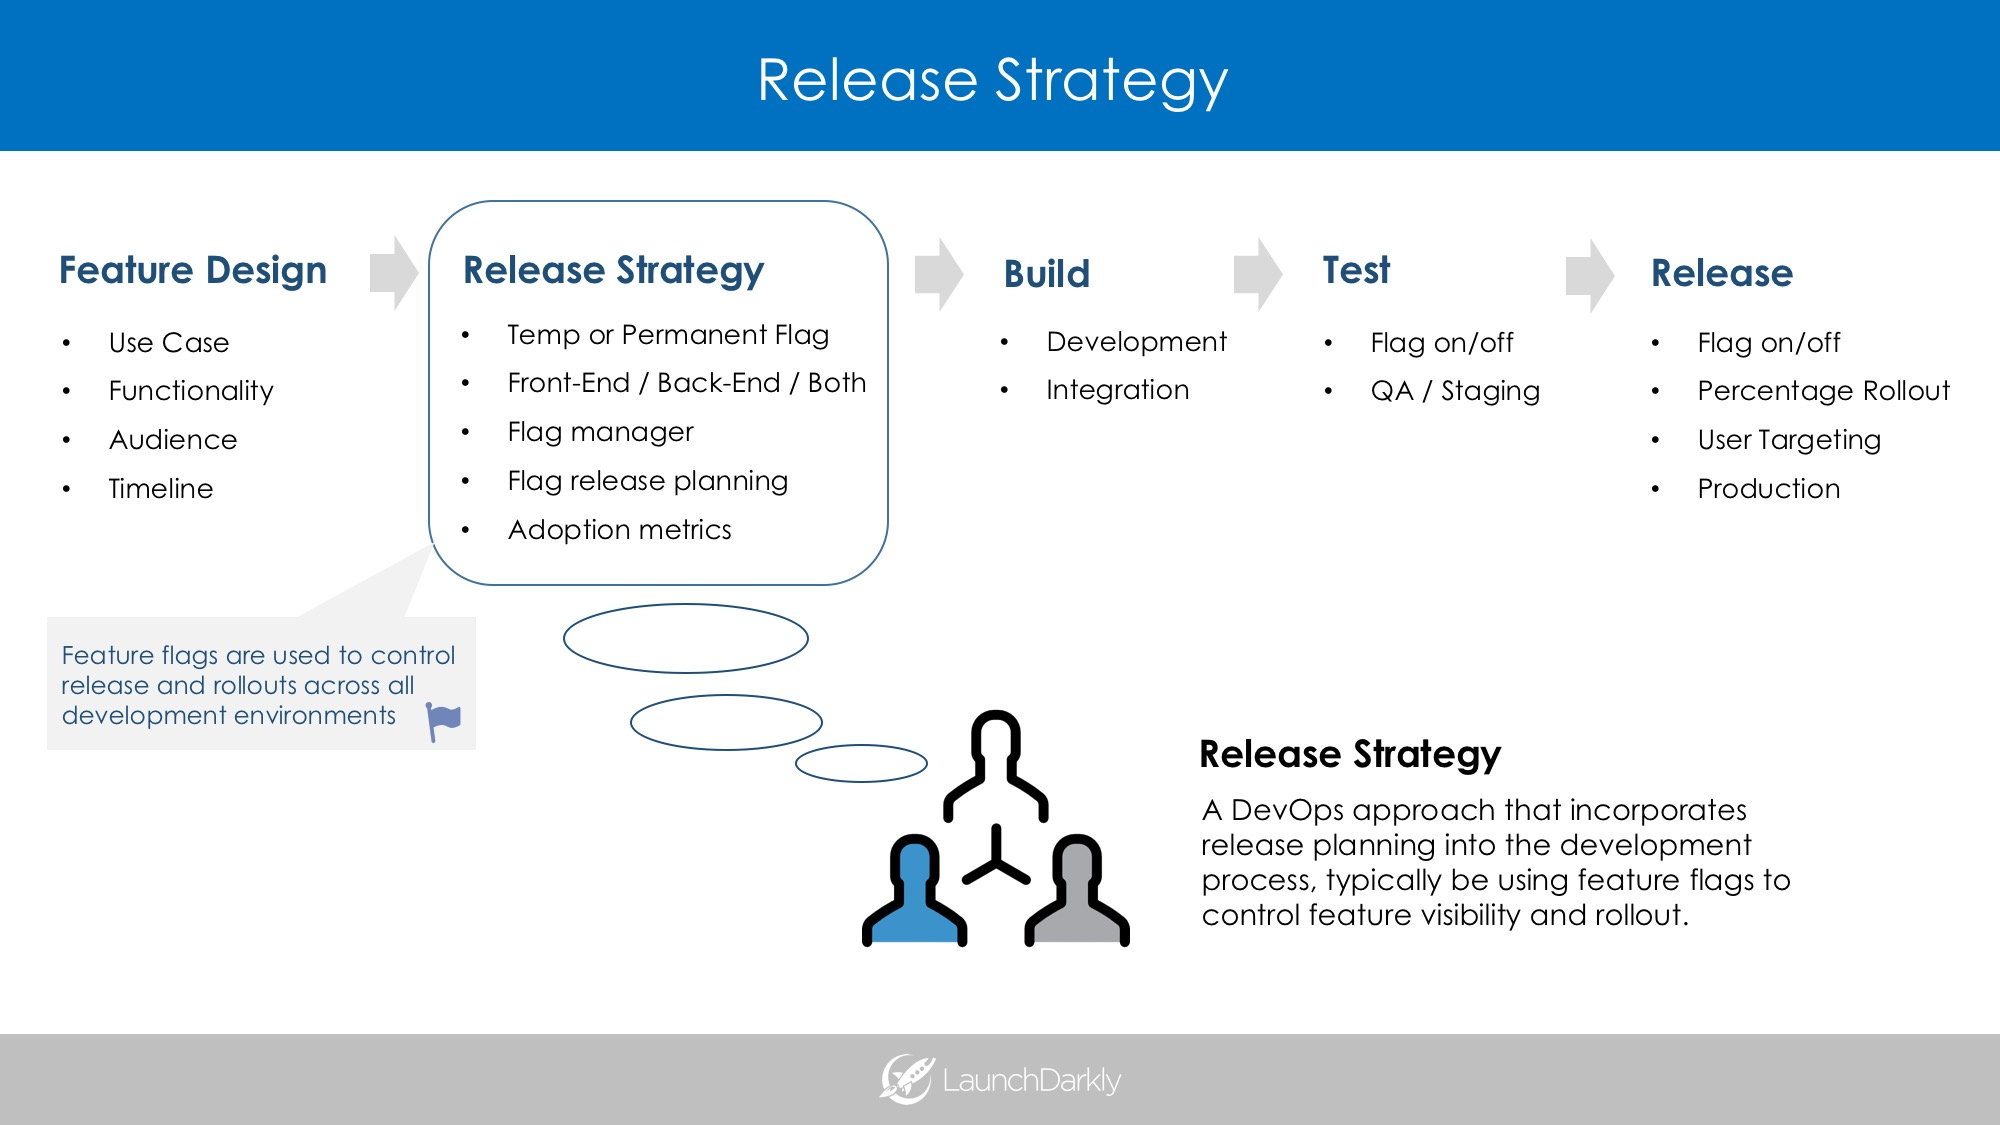 Release Strategy - DevOps - Feature Flags - LaunchDarkly